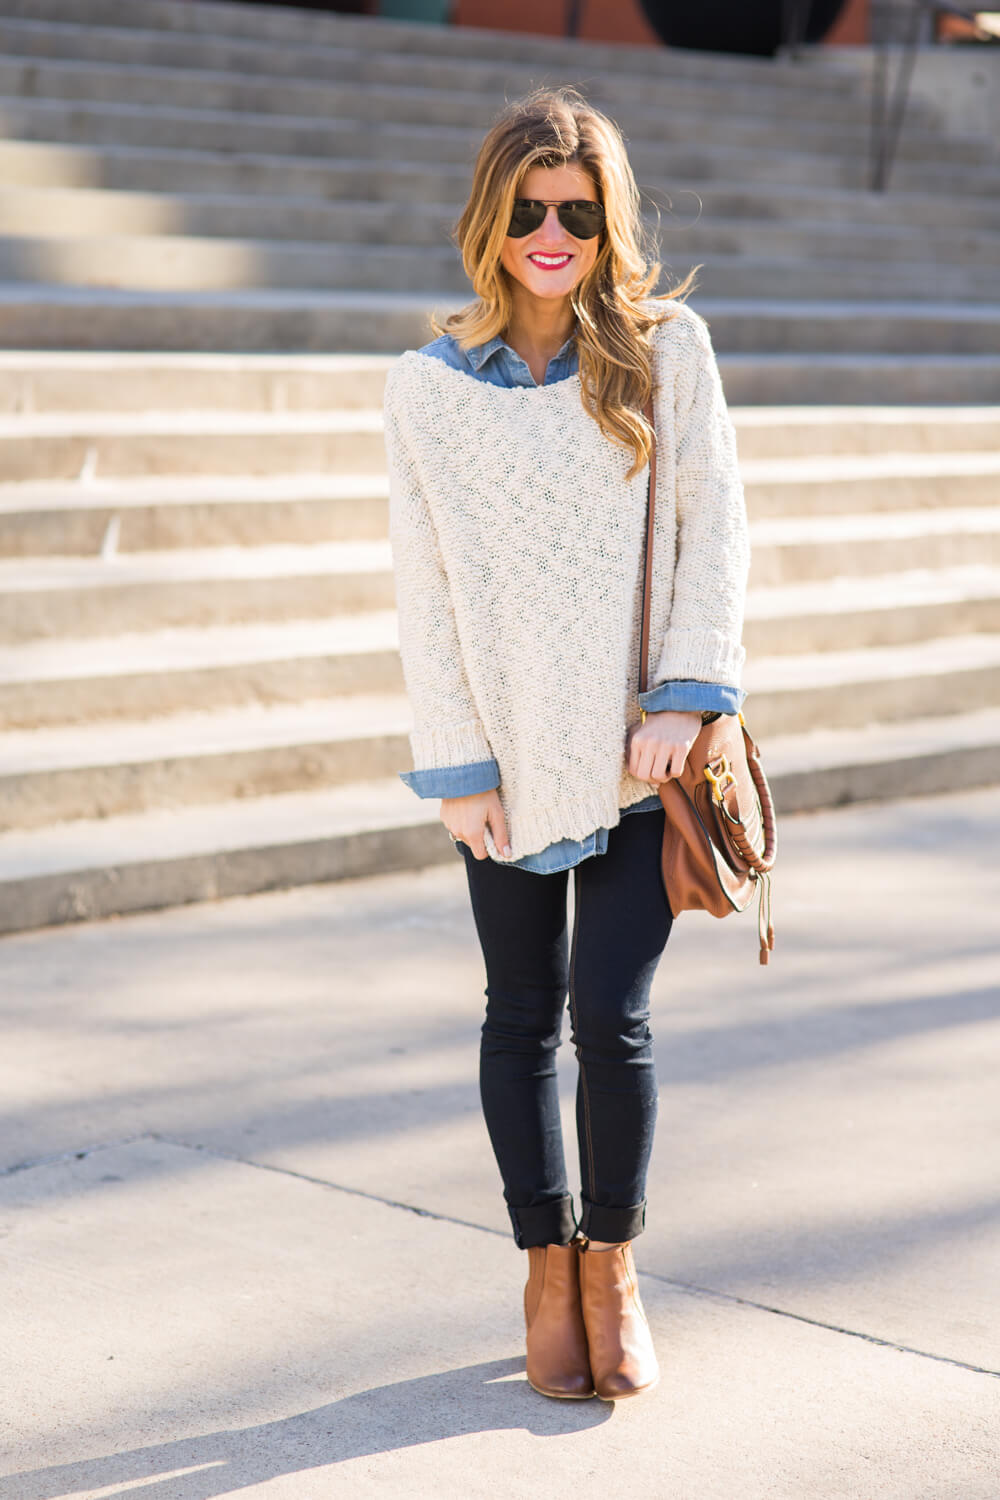 88c2365af89 white sweater + chambray shirt + skinny jeans + booties + crossbody bag. In  this look I layered ...